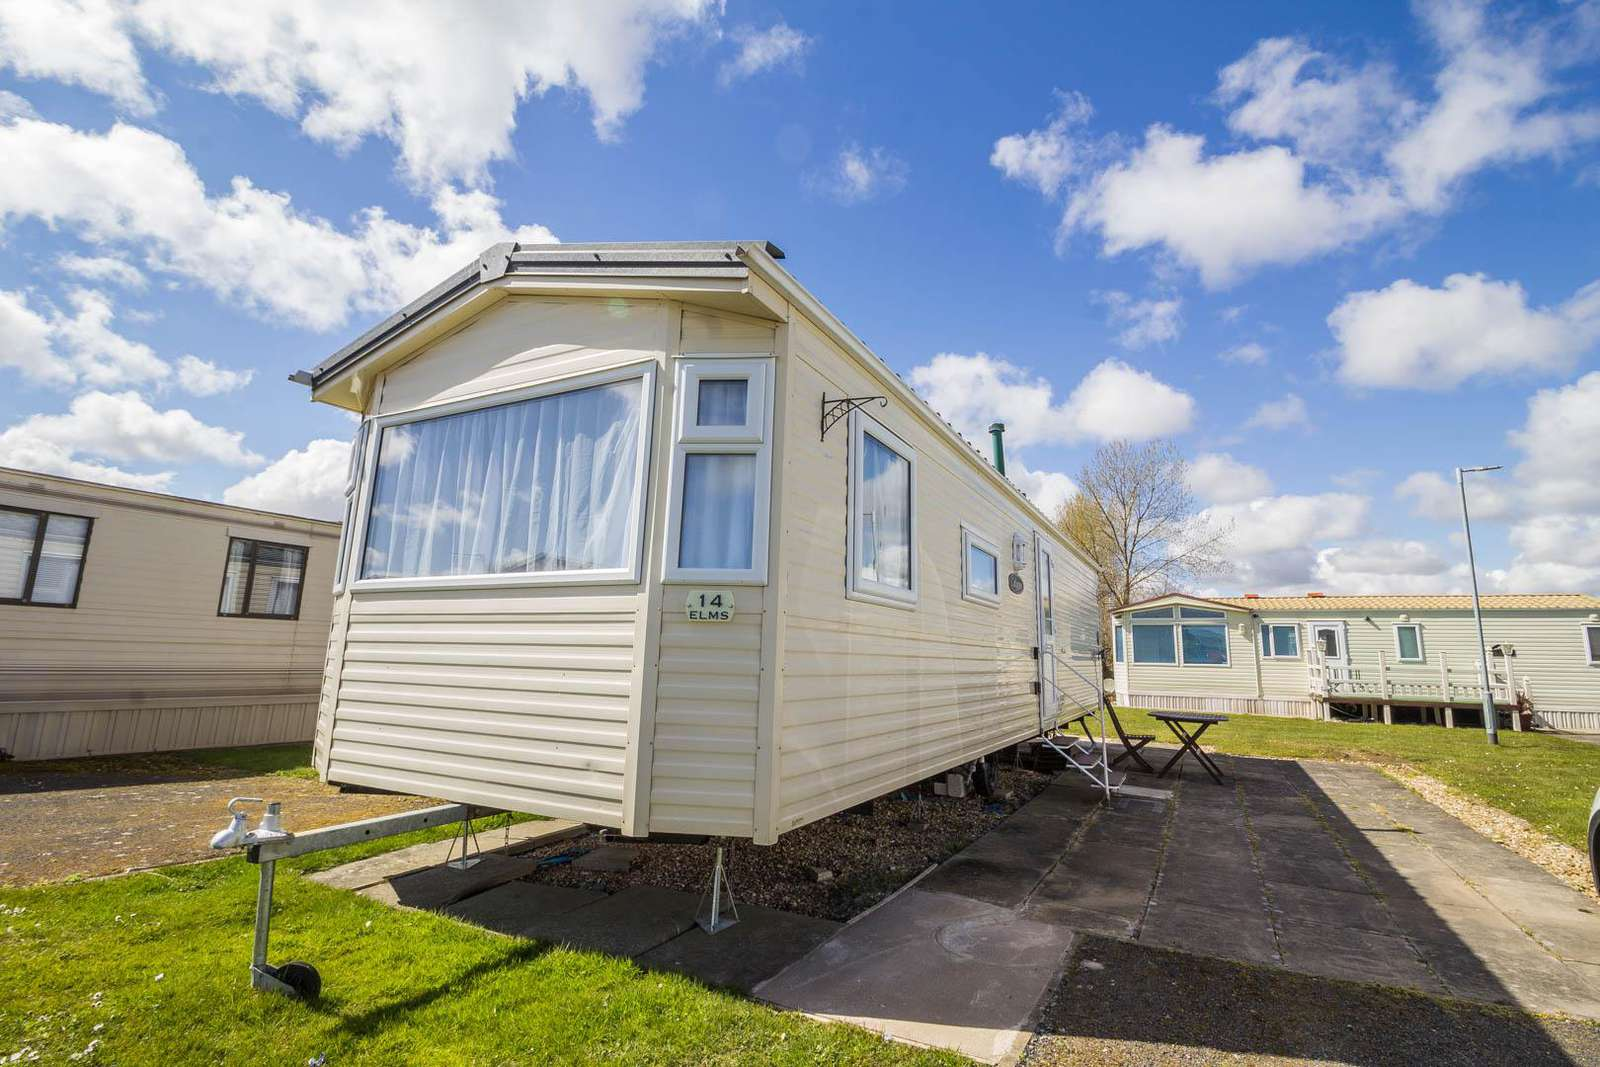 33014E – The Elms area, 3 bed, 8 berth caravan close to park amenities. Emerald rated. - property